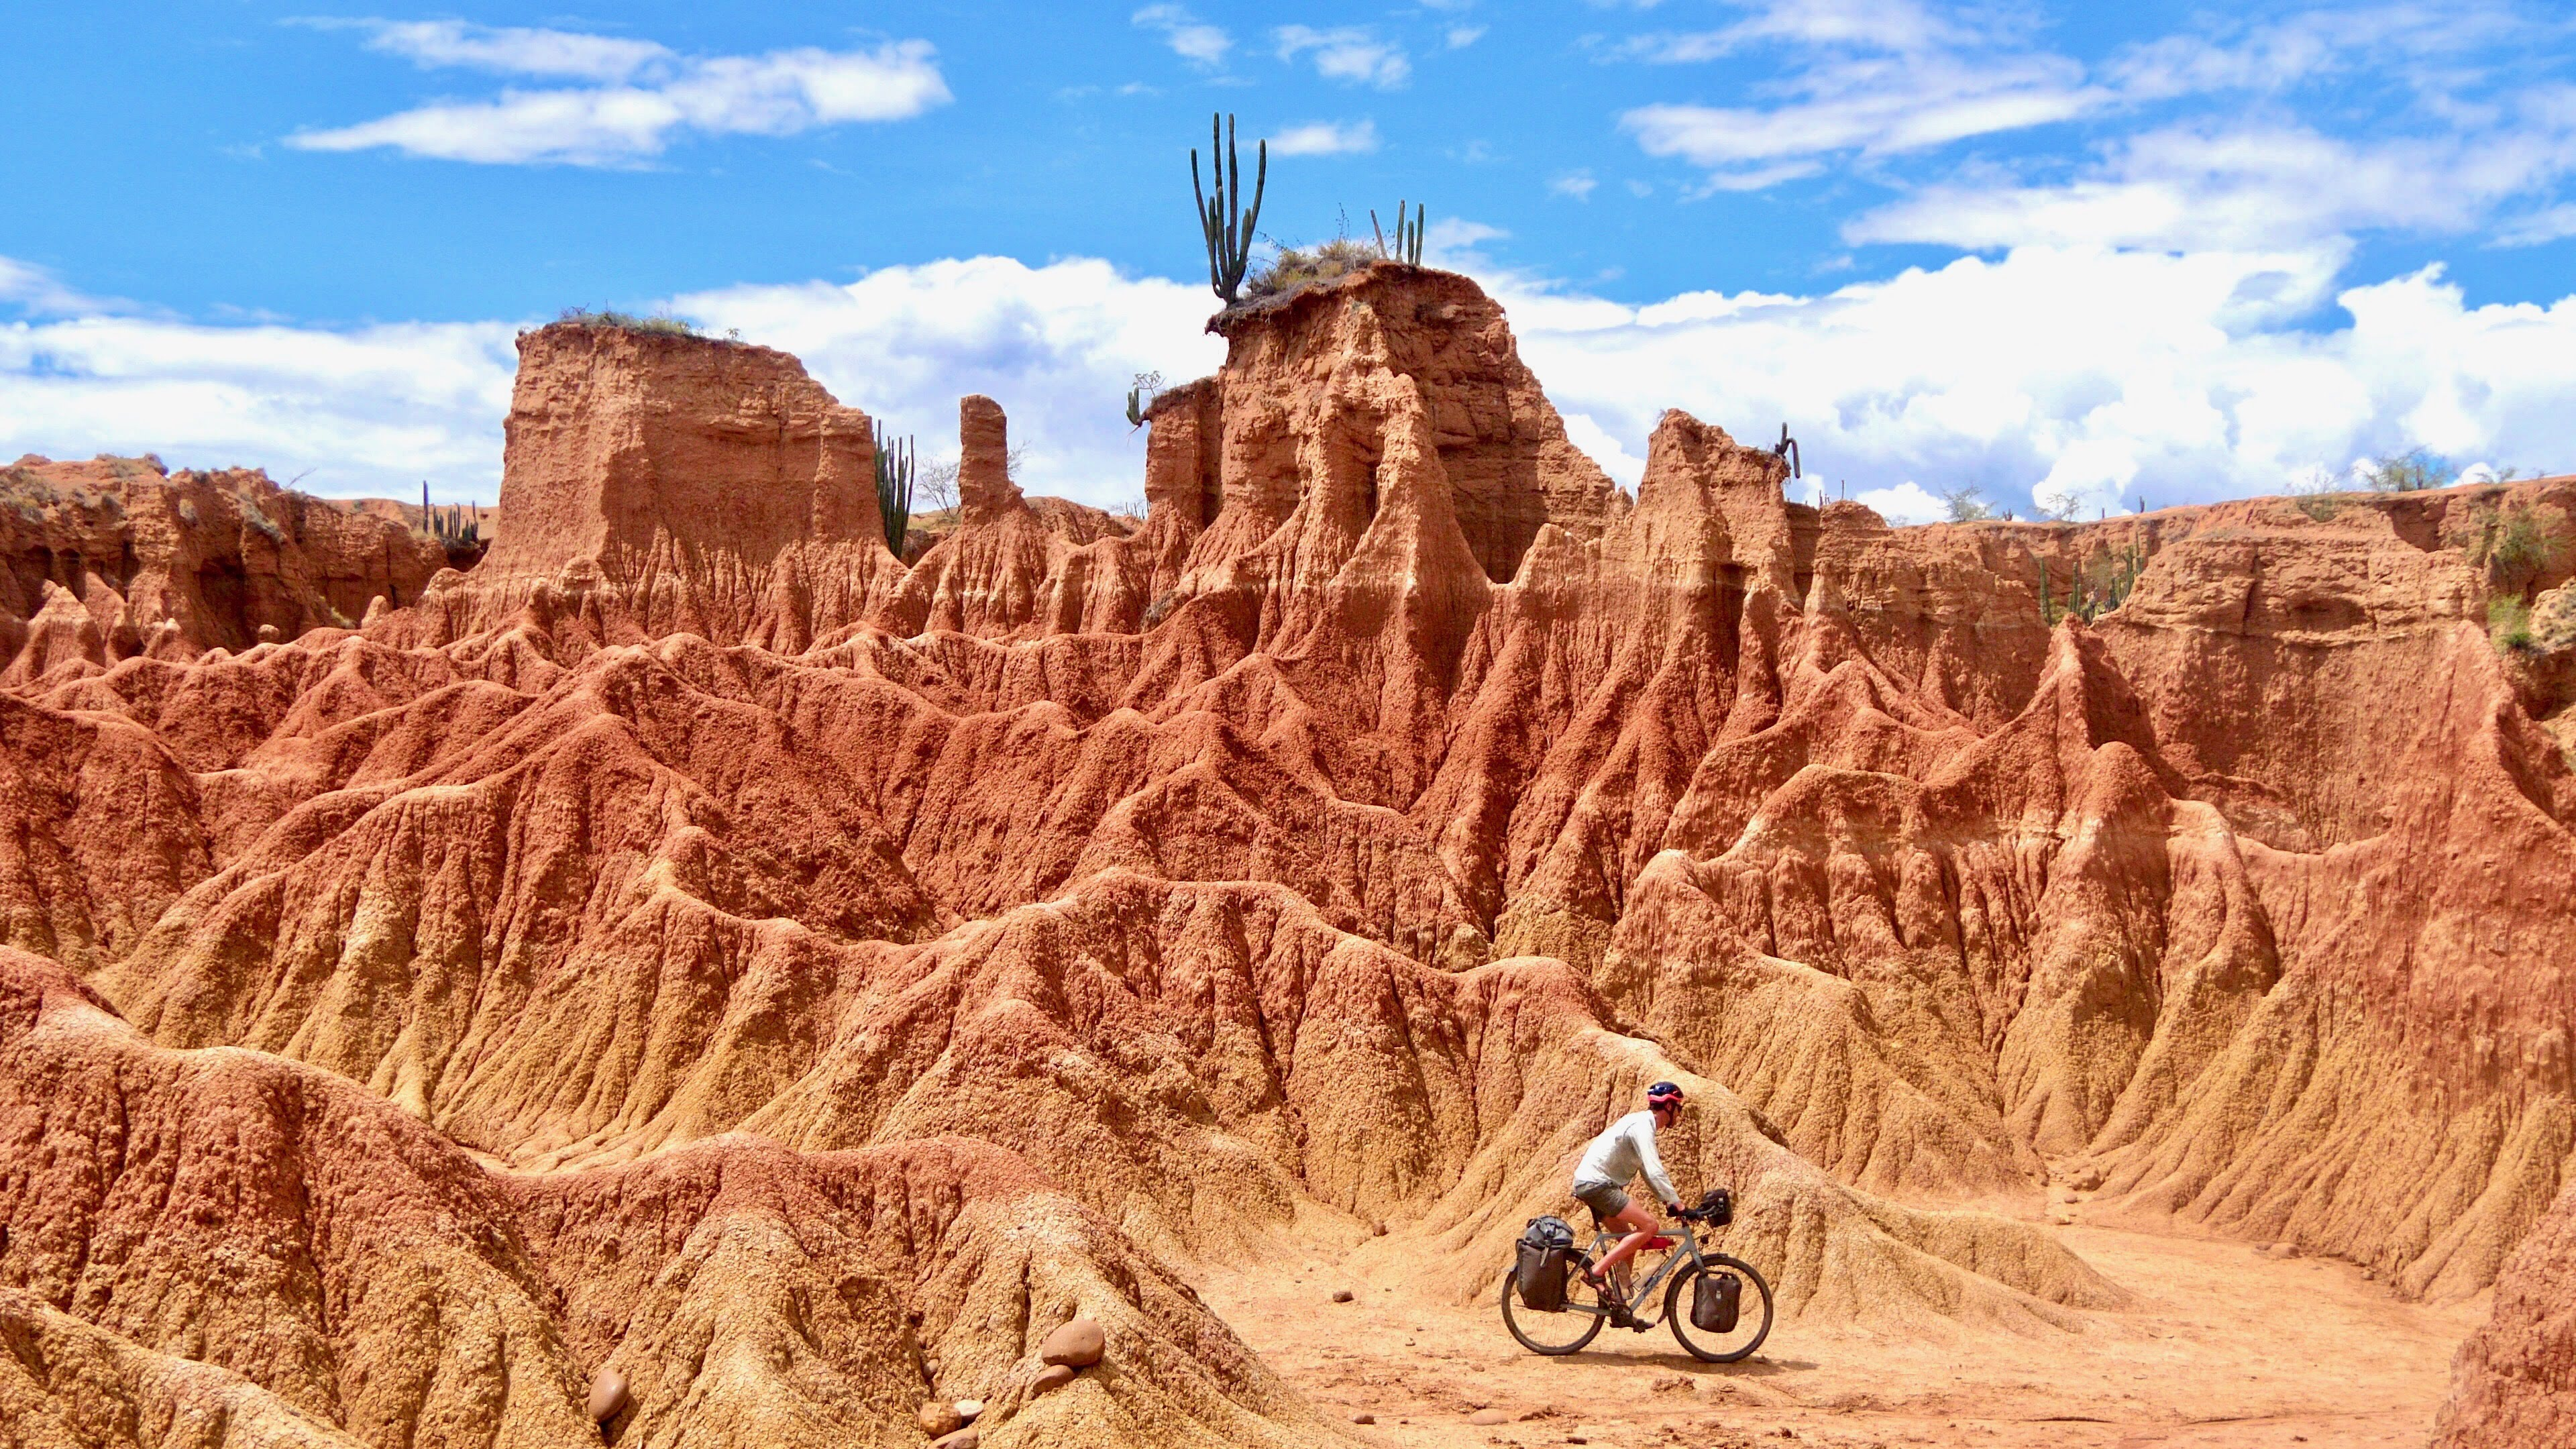 Photo Gallery: Crossing Colombia feat. Tatacoa Desert and Los Nevados National Park - CyclingAbout.com